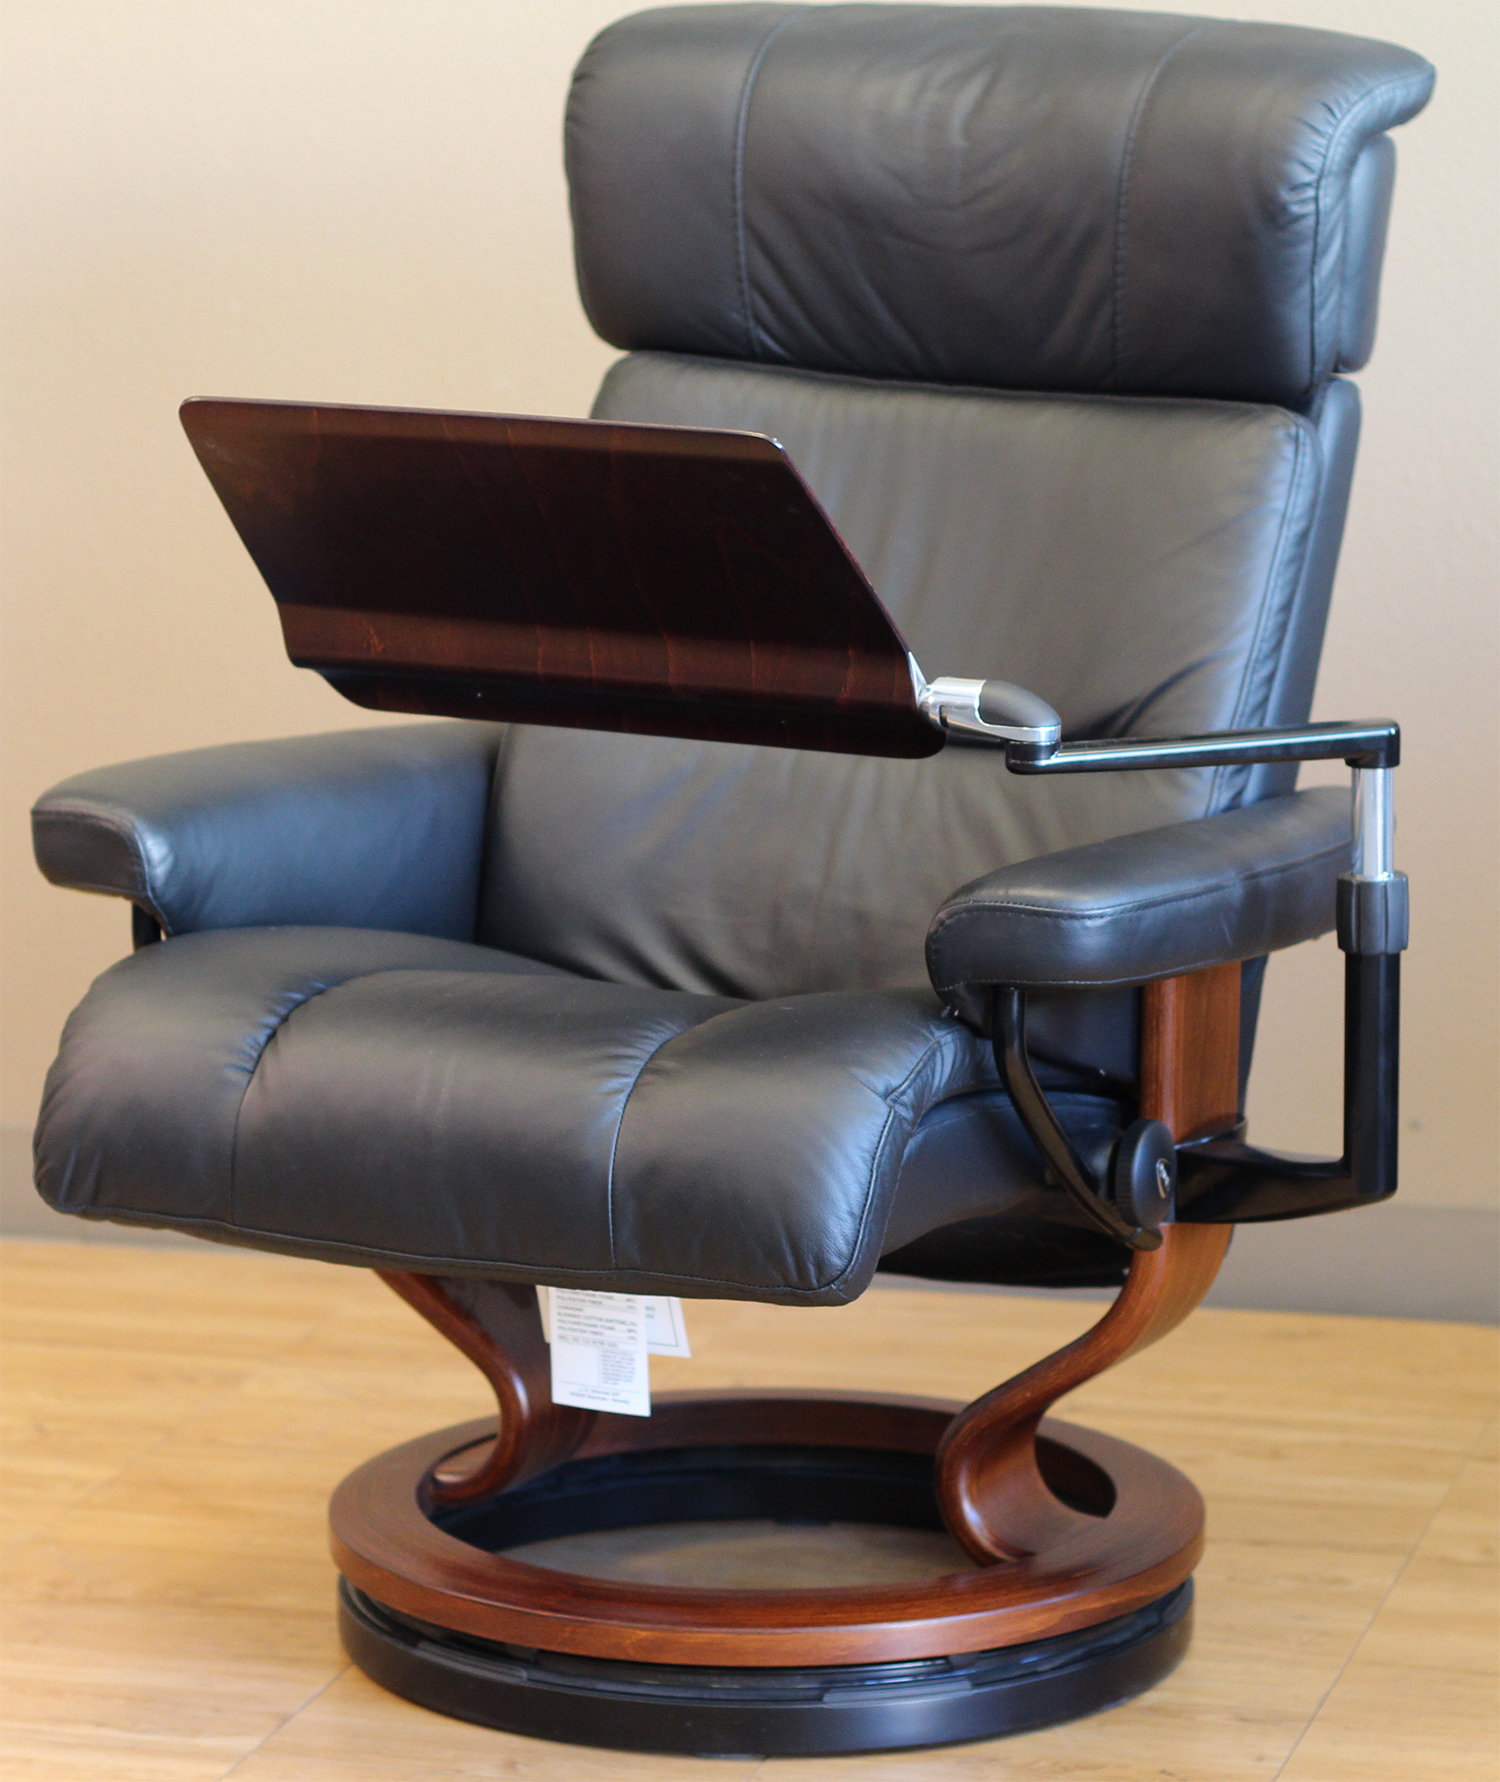 Stressless Personal Computer Laptop Desk Table From Ekornes